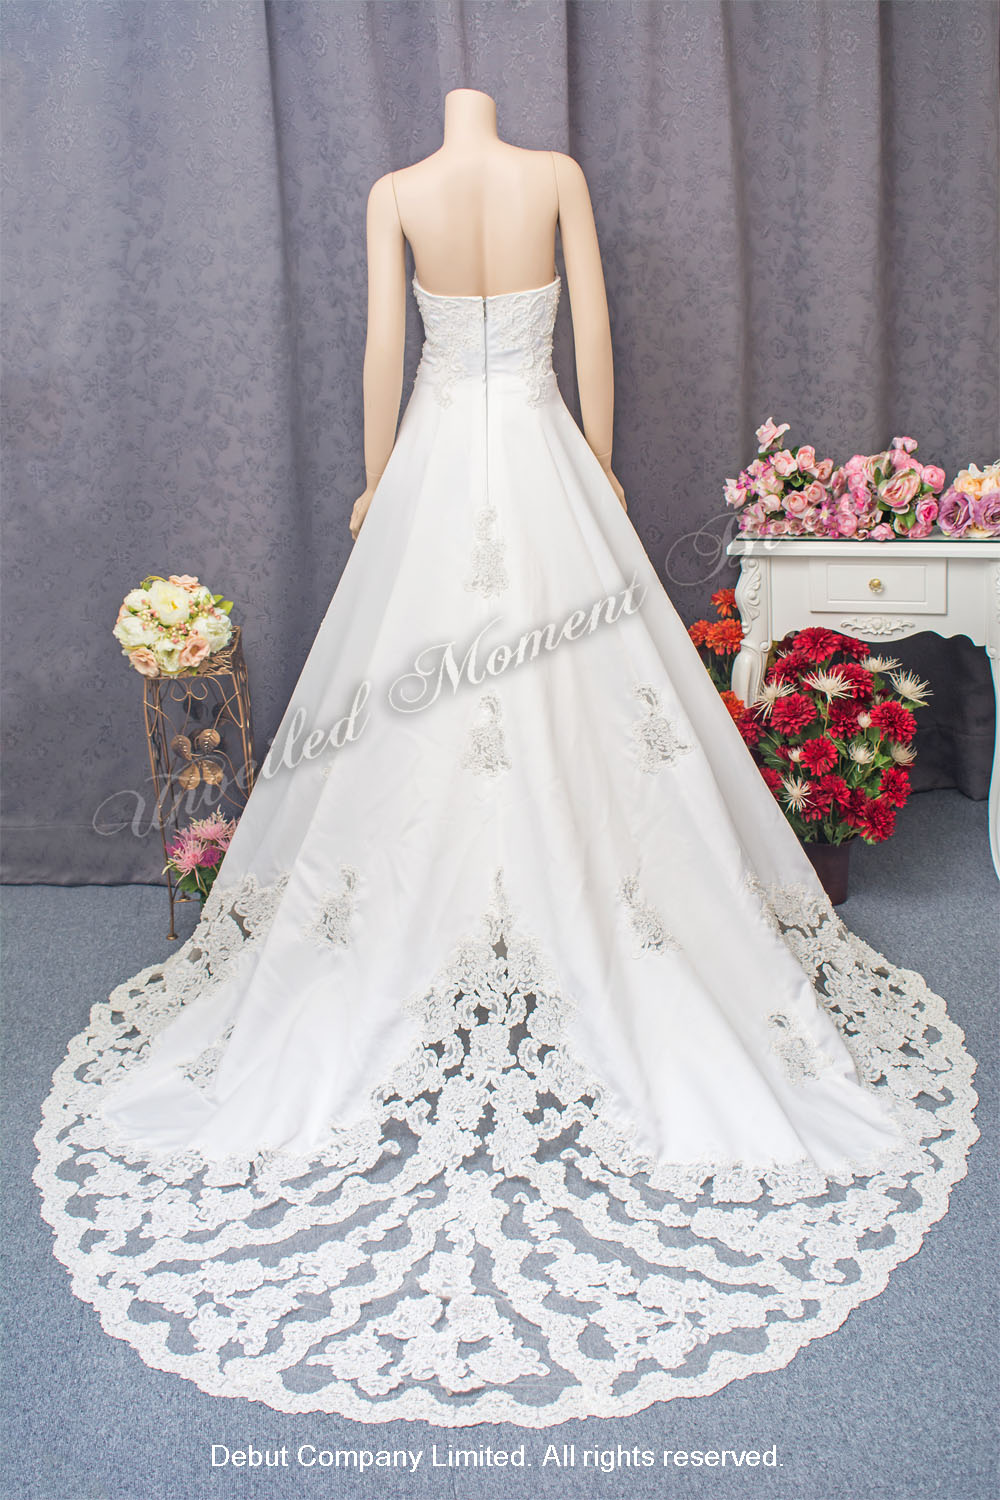 Strapless, A-line wedding gown with beaded lace appliques and an embellished lace chapel train. 無肩帶low-cut, 蕾絲釘珠花邊, A-line長拖尾婚紗